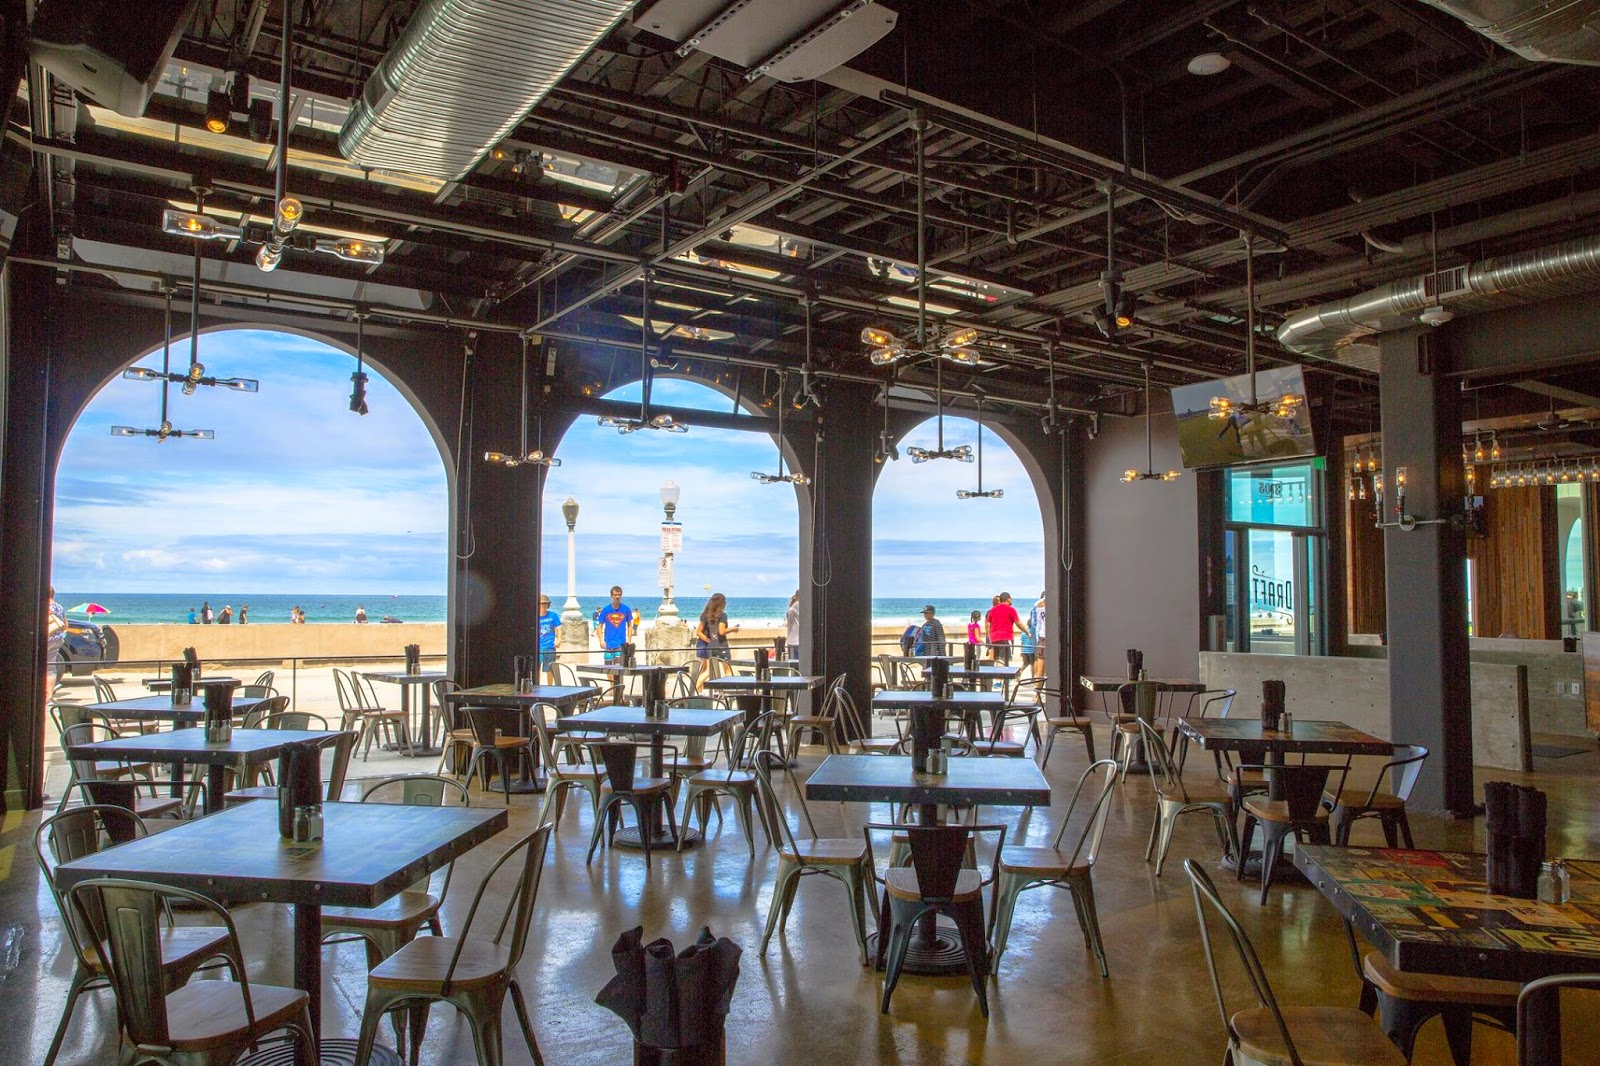 Draft Brings The Best Of Mission Beach Belmont S Newest Beer Bar Offers Everything One Could Want And More